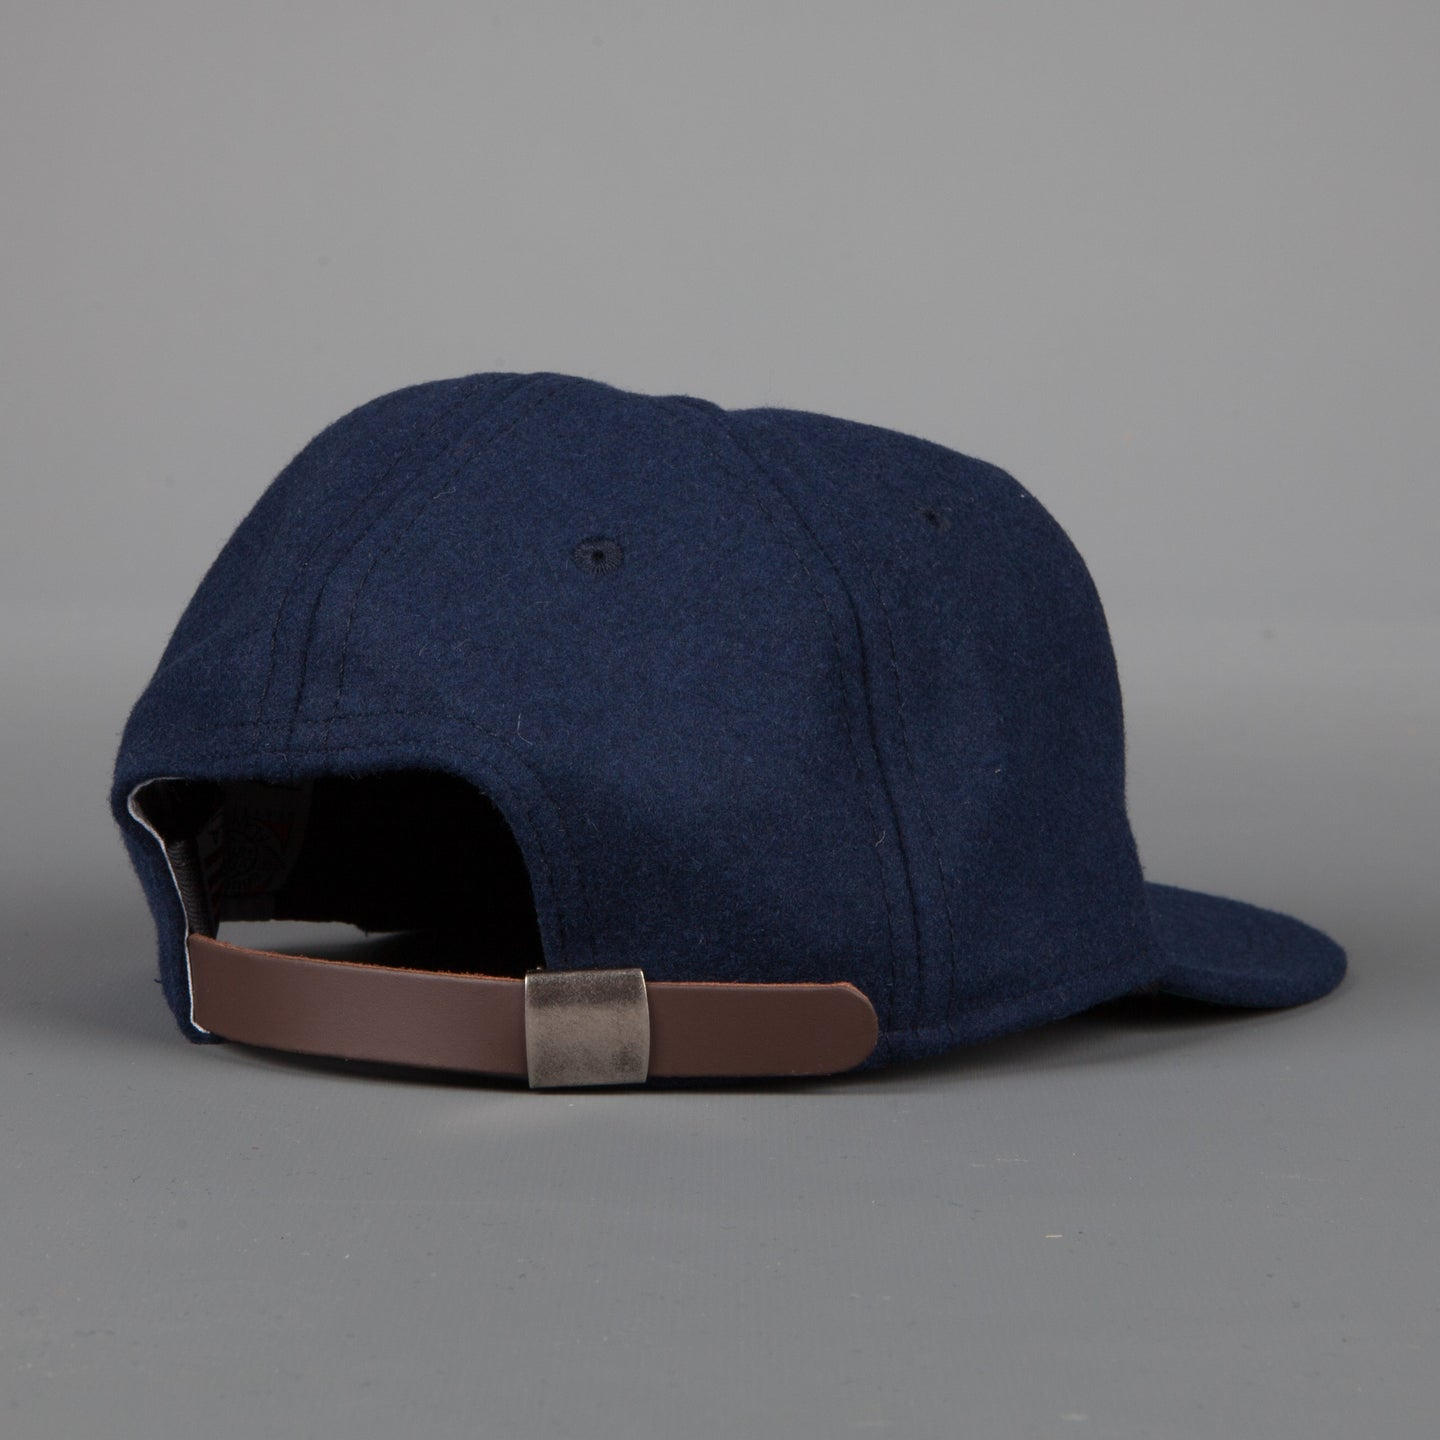 Ebbets Field Flannel Navy Wool Peyote